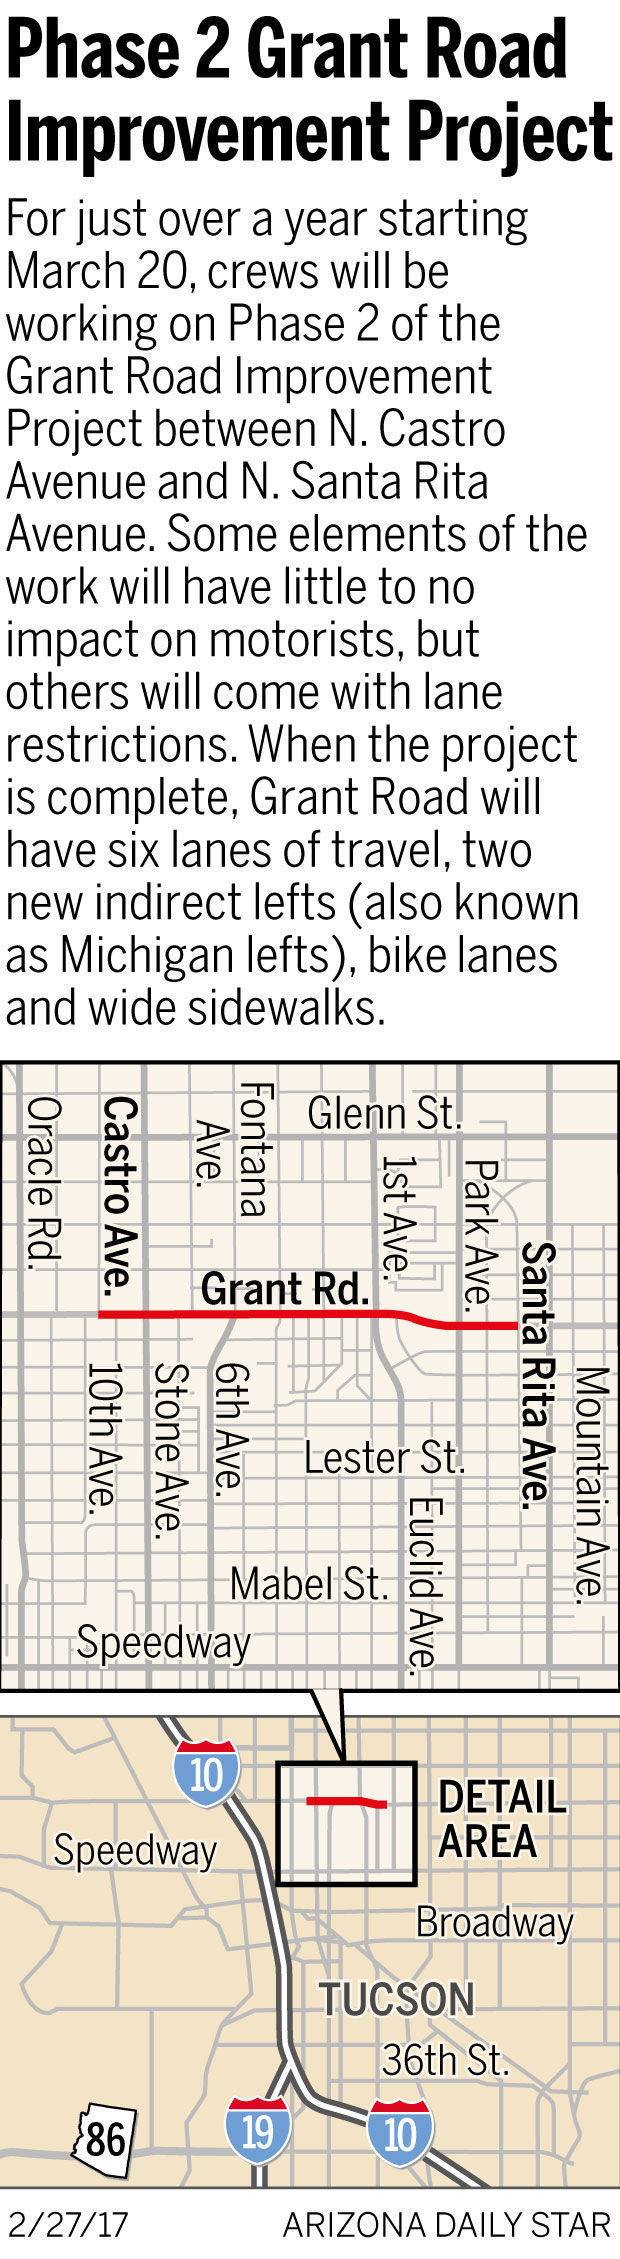 Phase 2 Grant Road Improvement Project